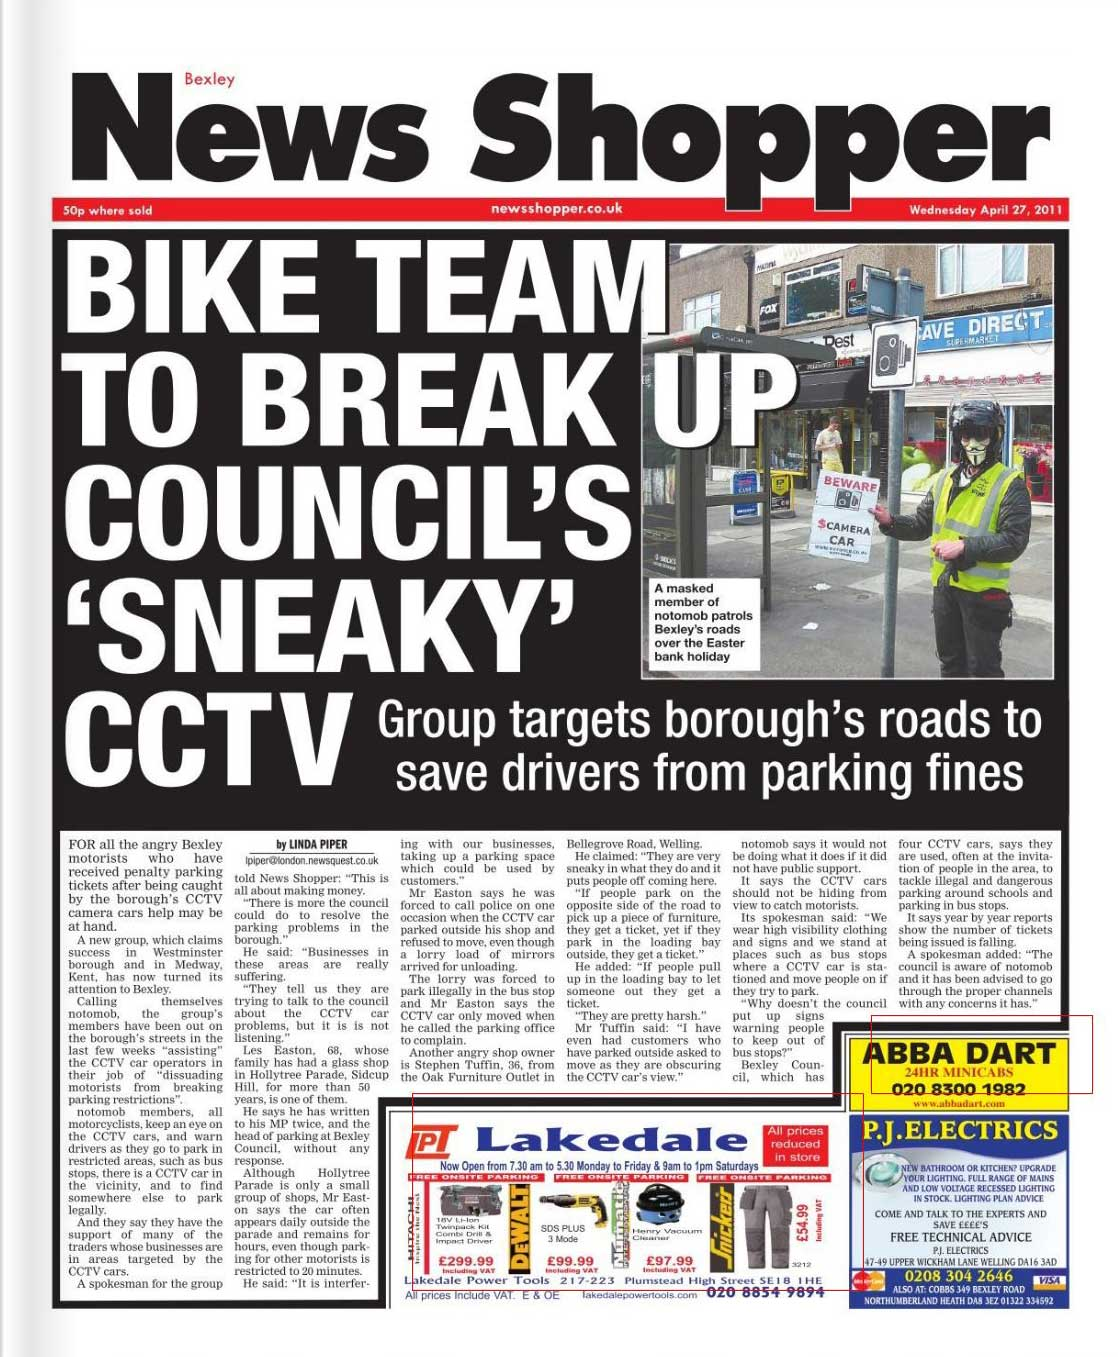 News Shopper front page